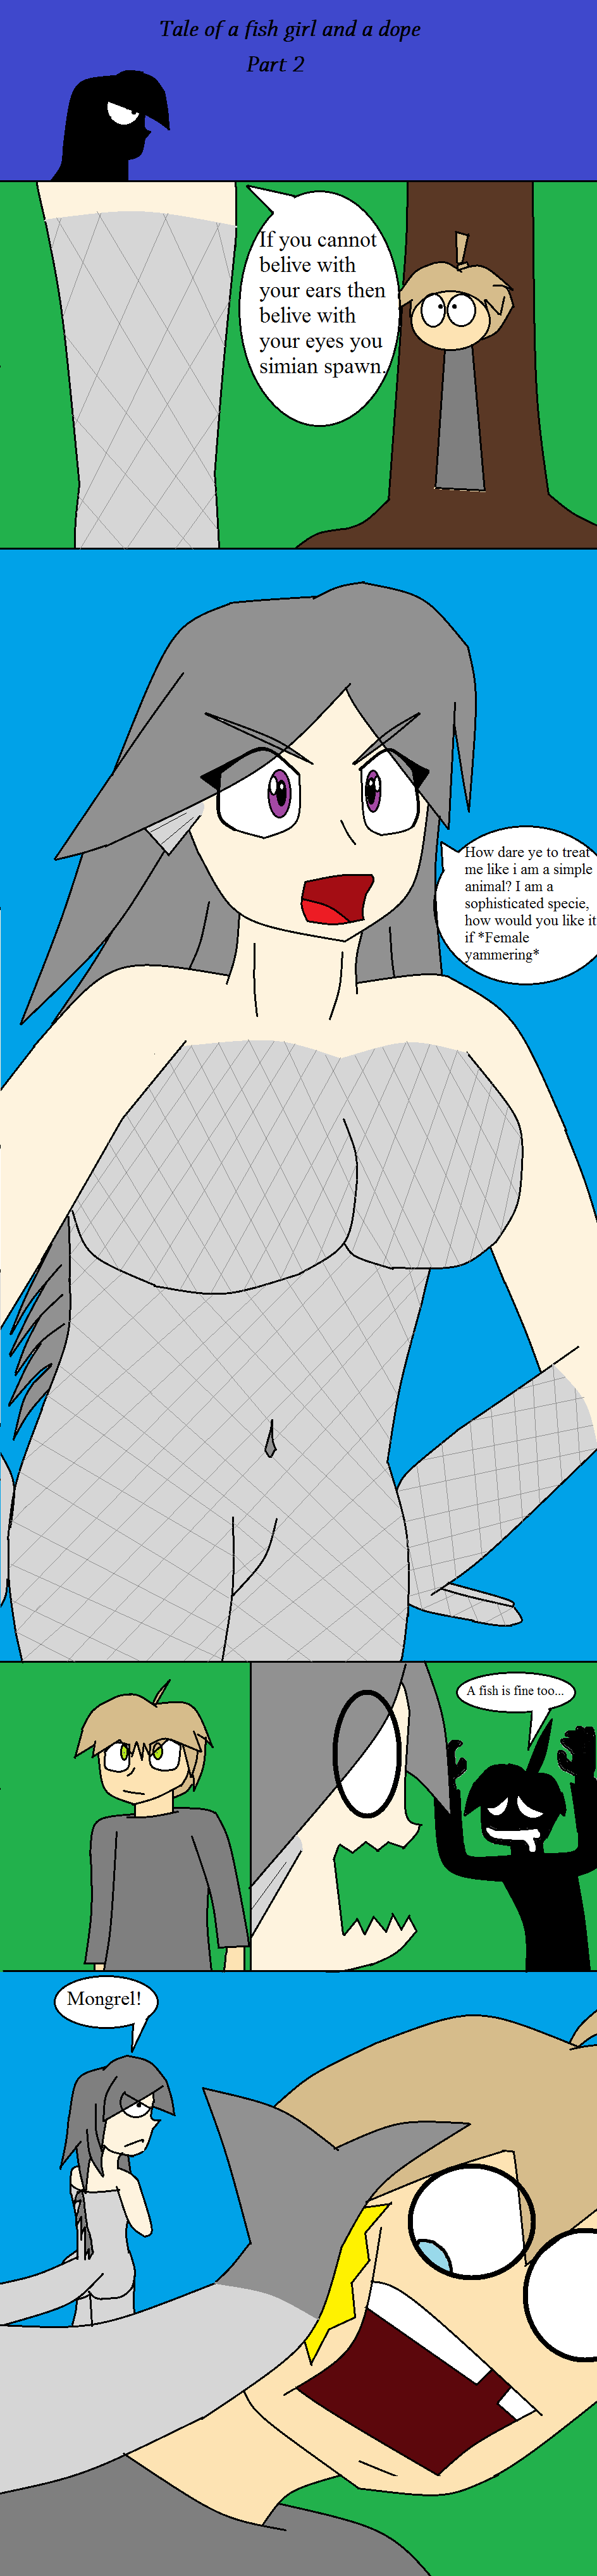 Fish Girl-2. For those who didnt see part 1 go here . f you cannot belive with your ears then belive with your eyes you simian spawn. our dare ye to [mrm me lik